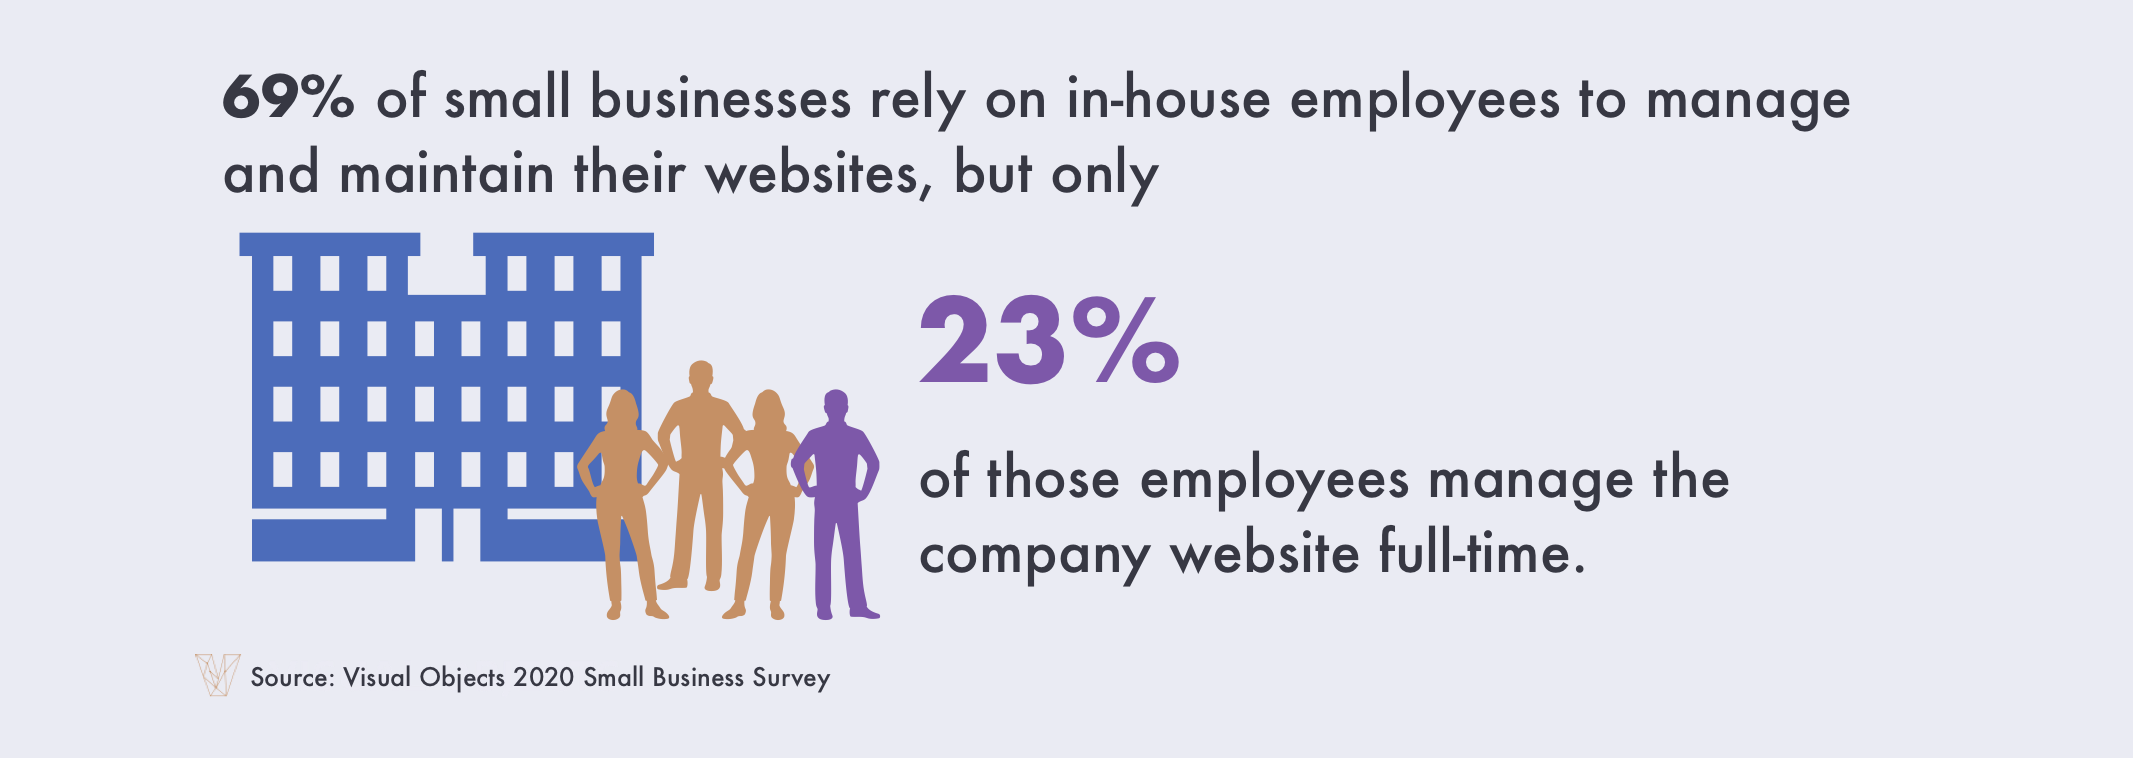 Most small businesses (69%) use in-house employees to build and manage their websites.